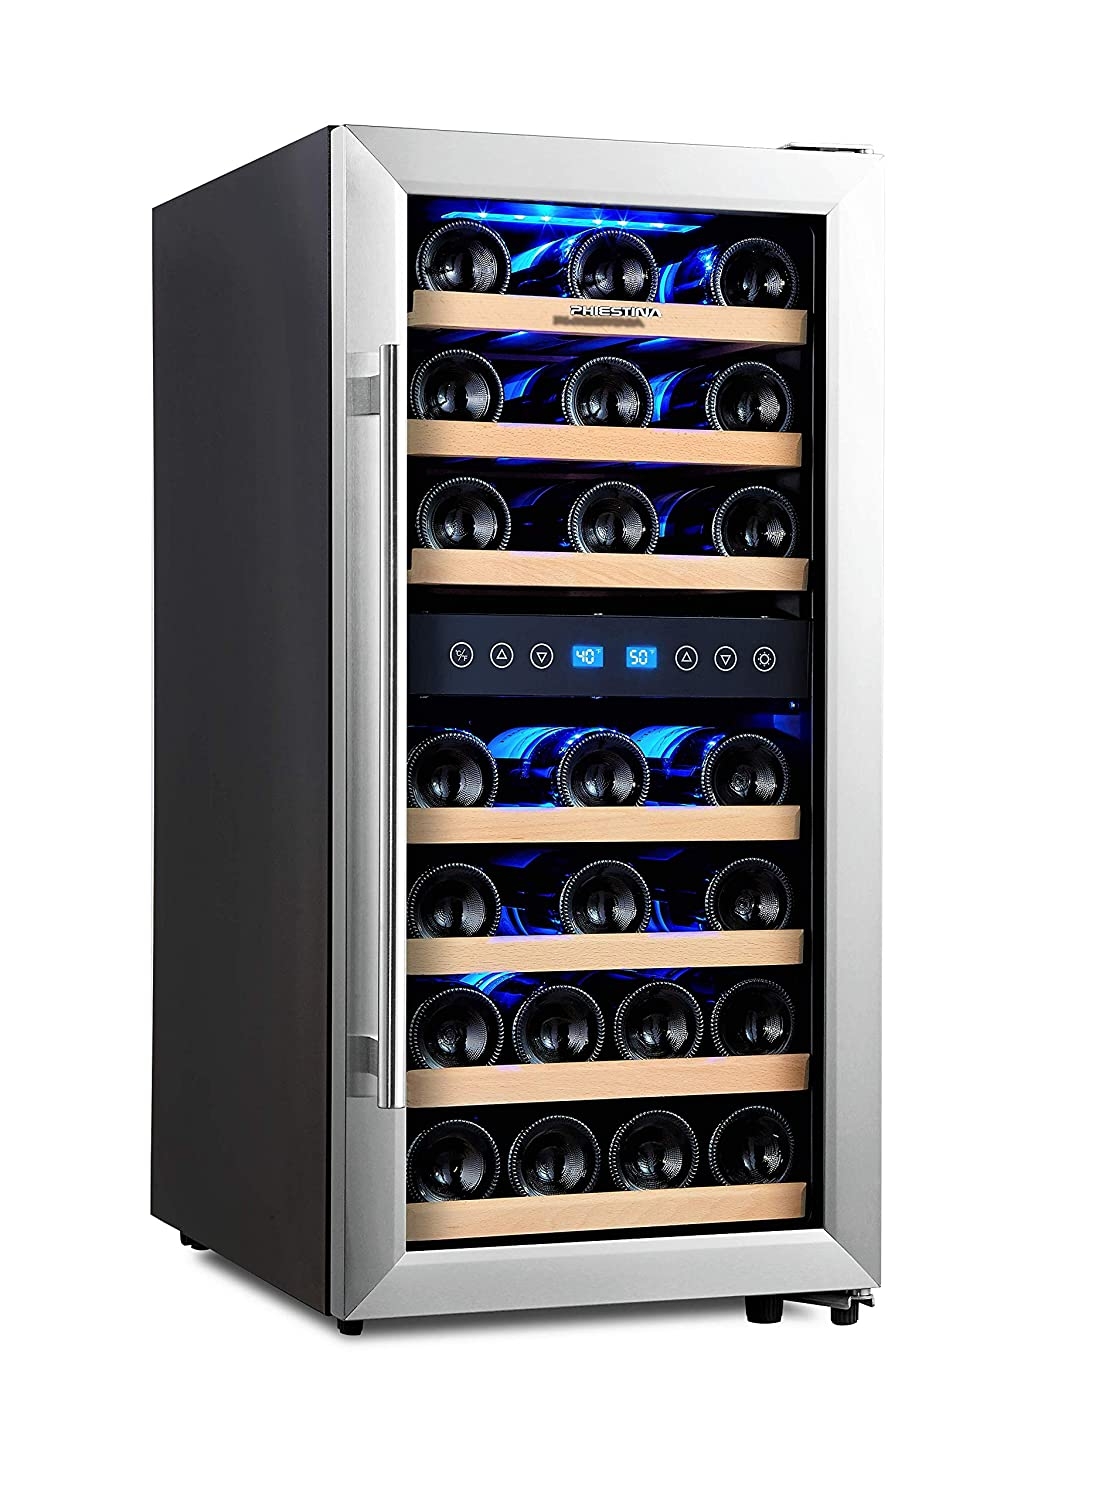 Phiestina 33 Bottle Wine Cooler Double Zone Steel Door with Handle